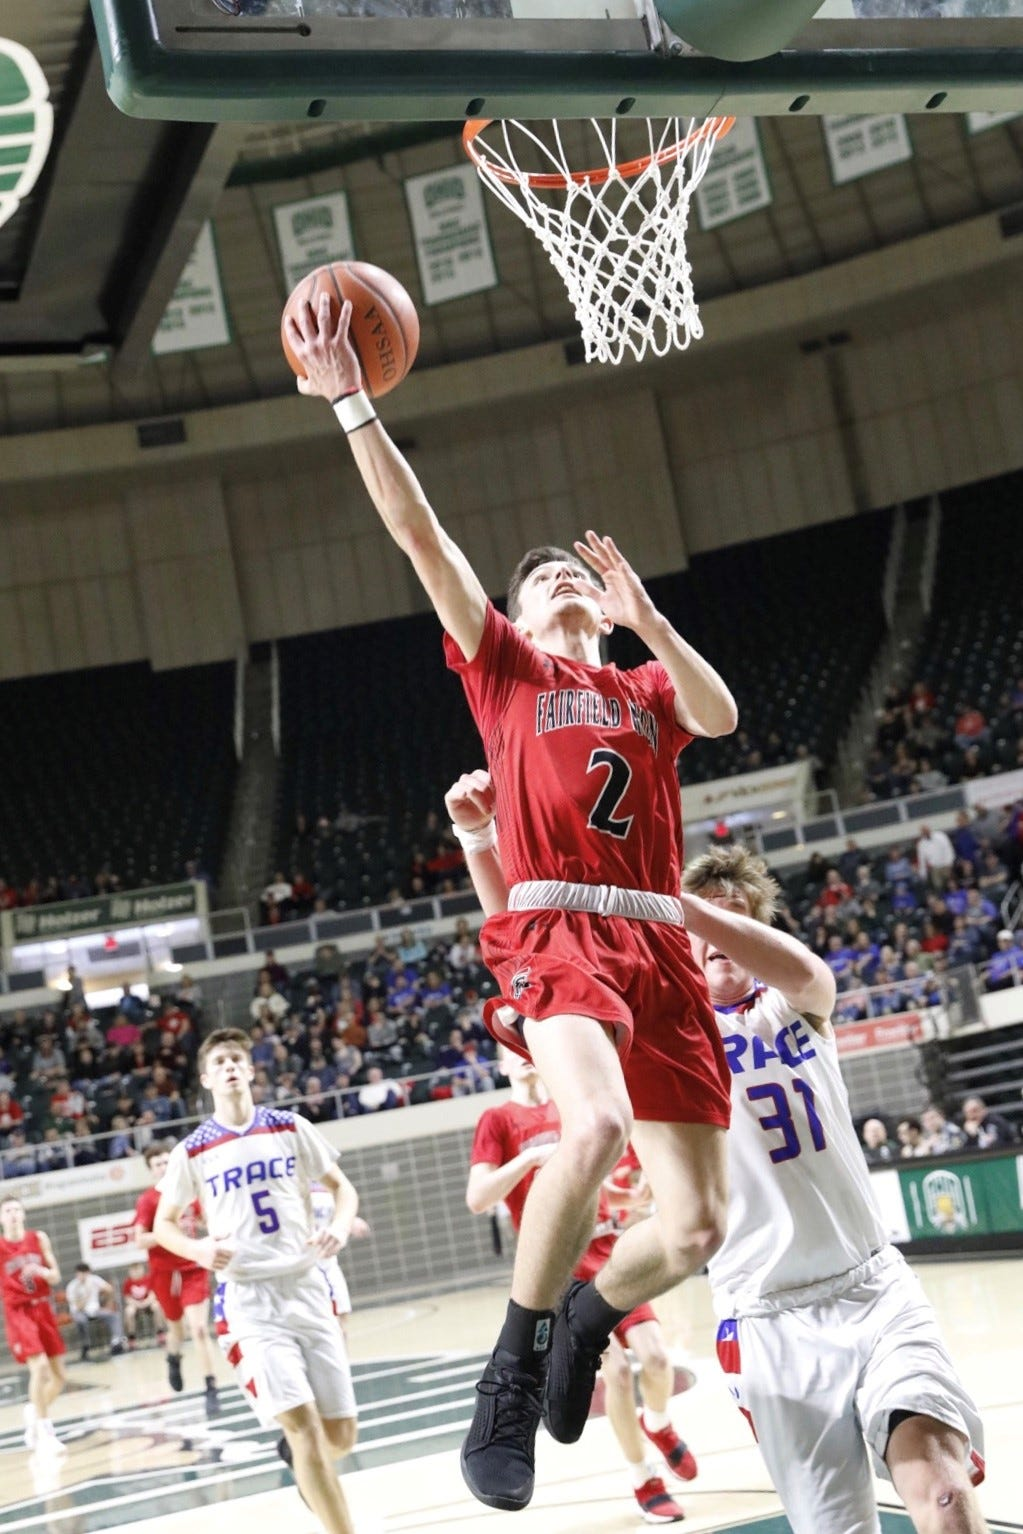 Fairfield Union senior guard Evan Conley goes in for two of his 20 points against Zane Trace in a Southeast District Division II final Sunday at Ohio University's Convocation Center. The Falcons lost, 51-45.